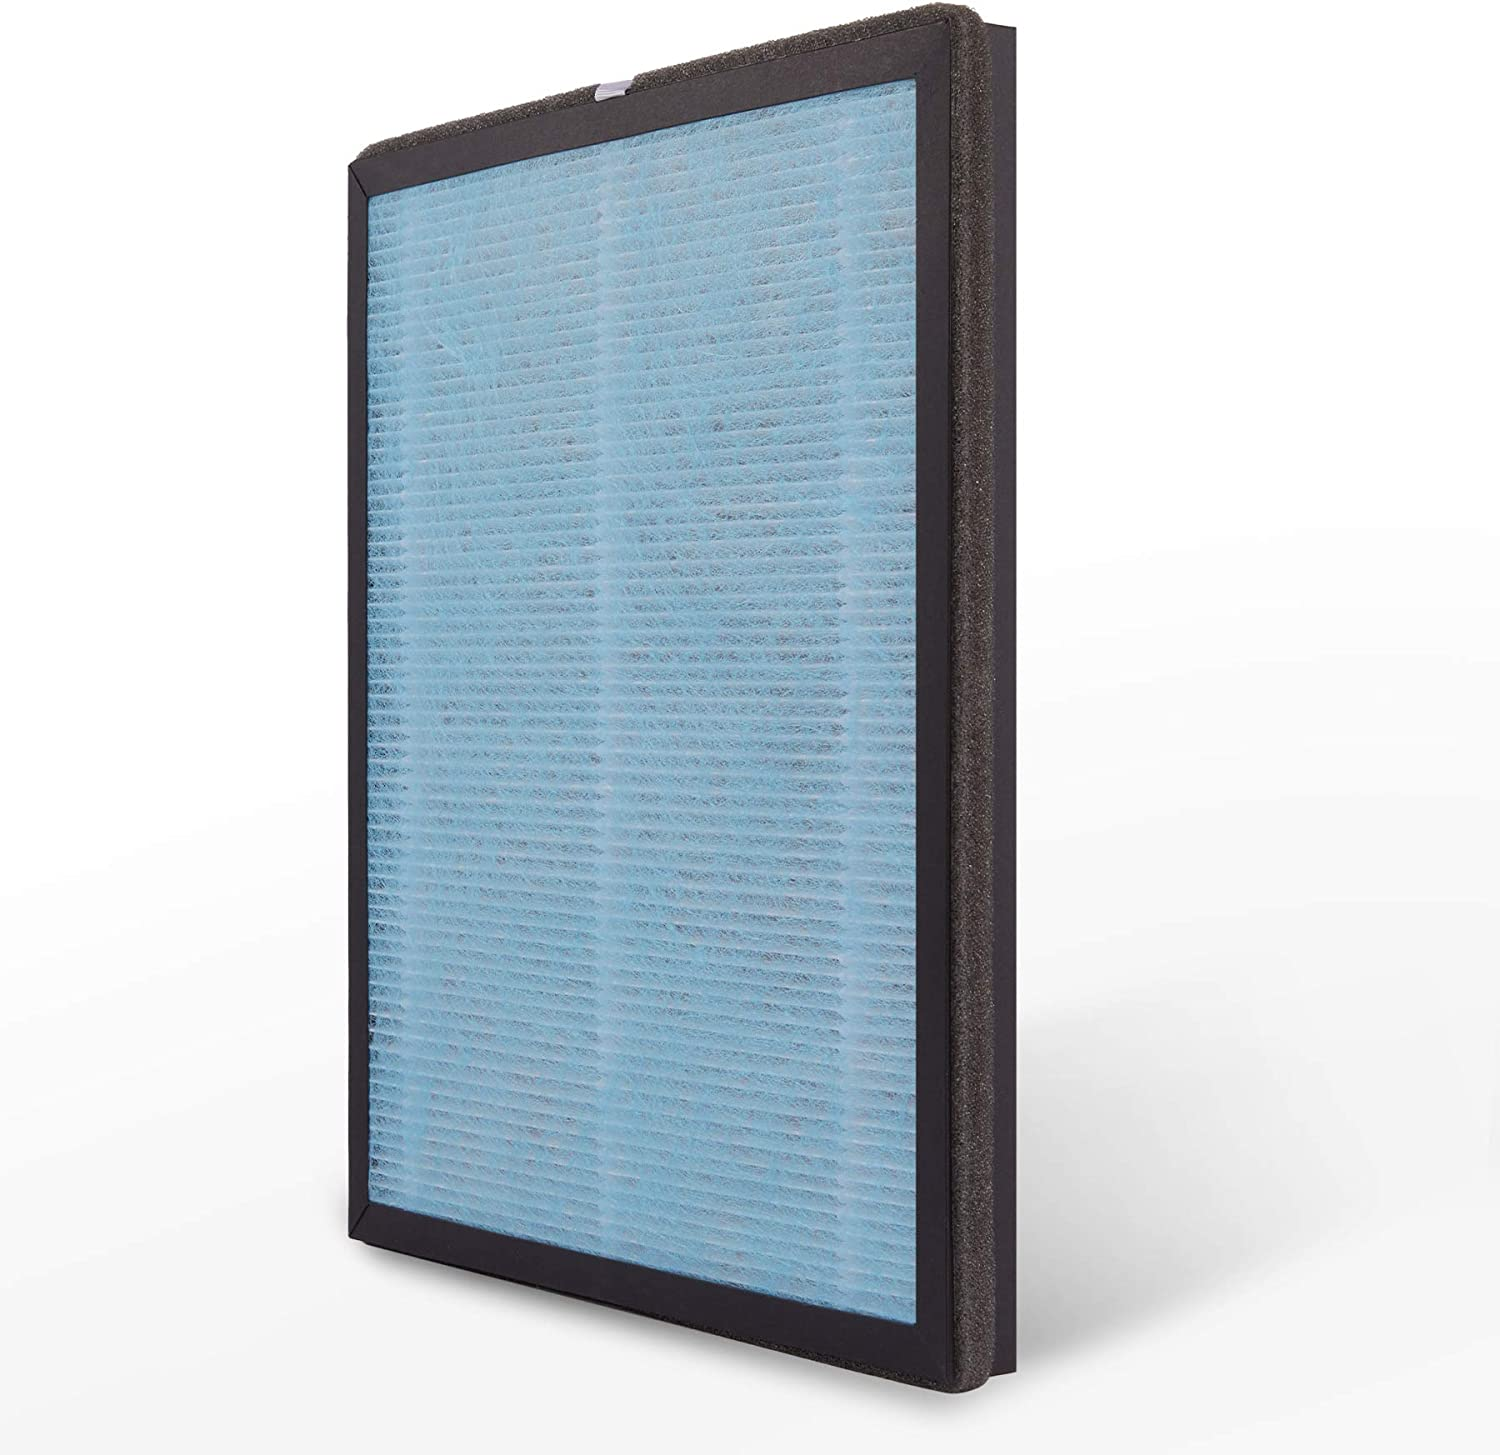 CO-Z Replacement Brand Cheap Sale Venue Air Filter for W664 Purifiers New Free Shipping